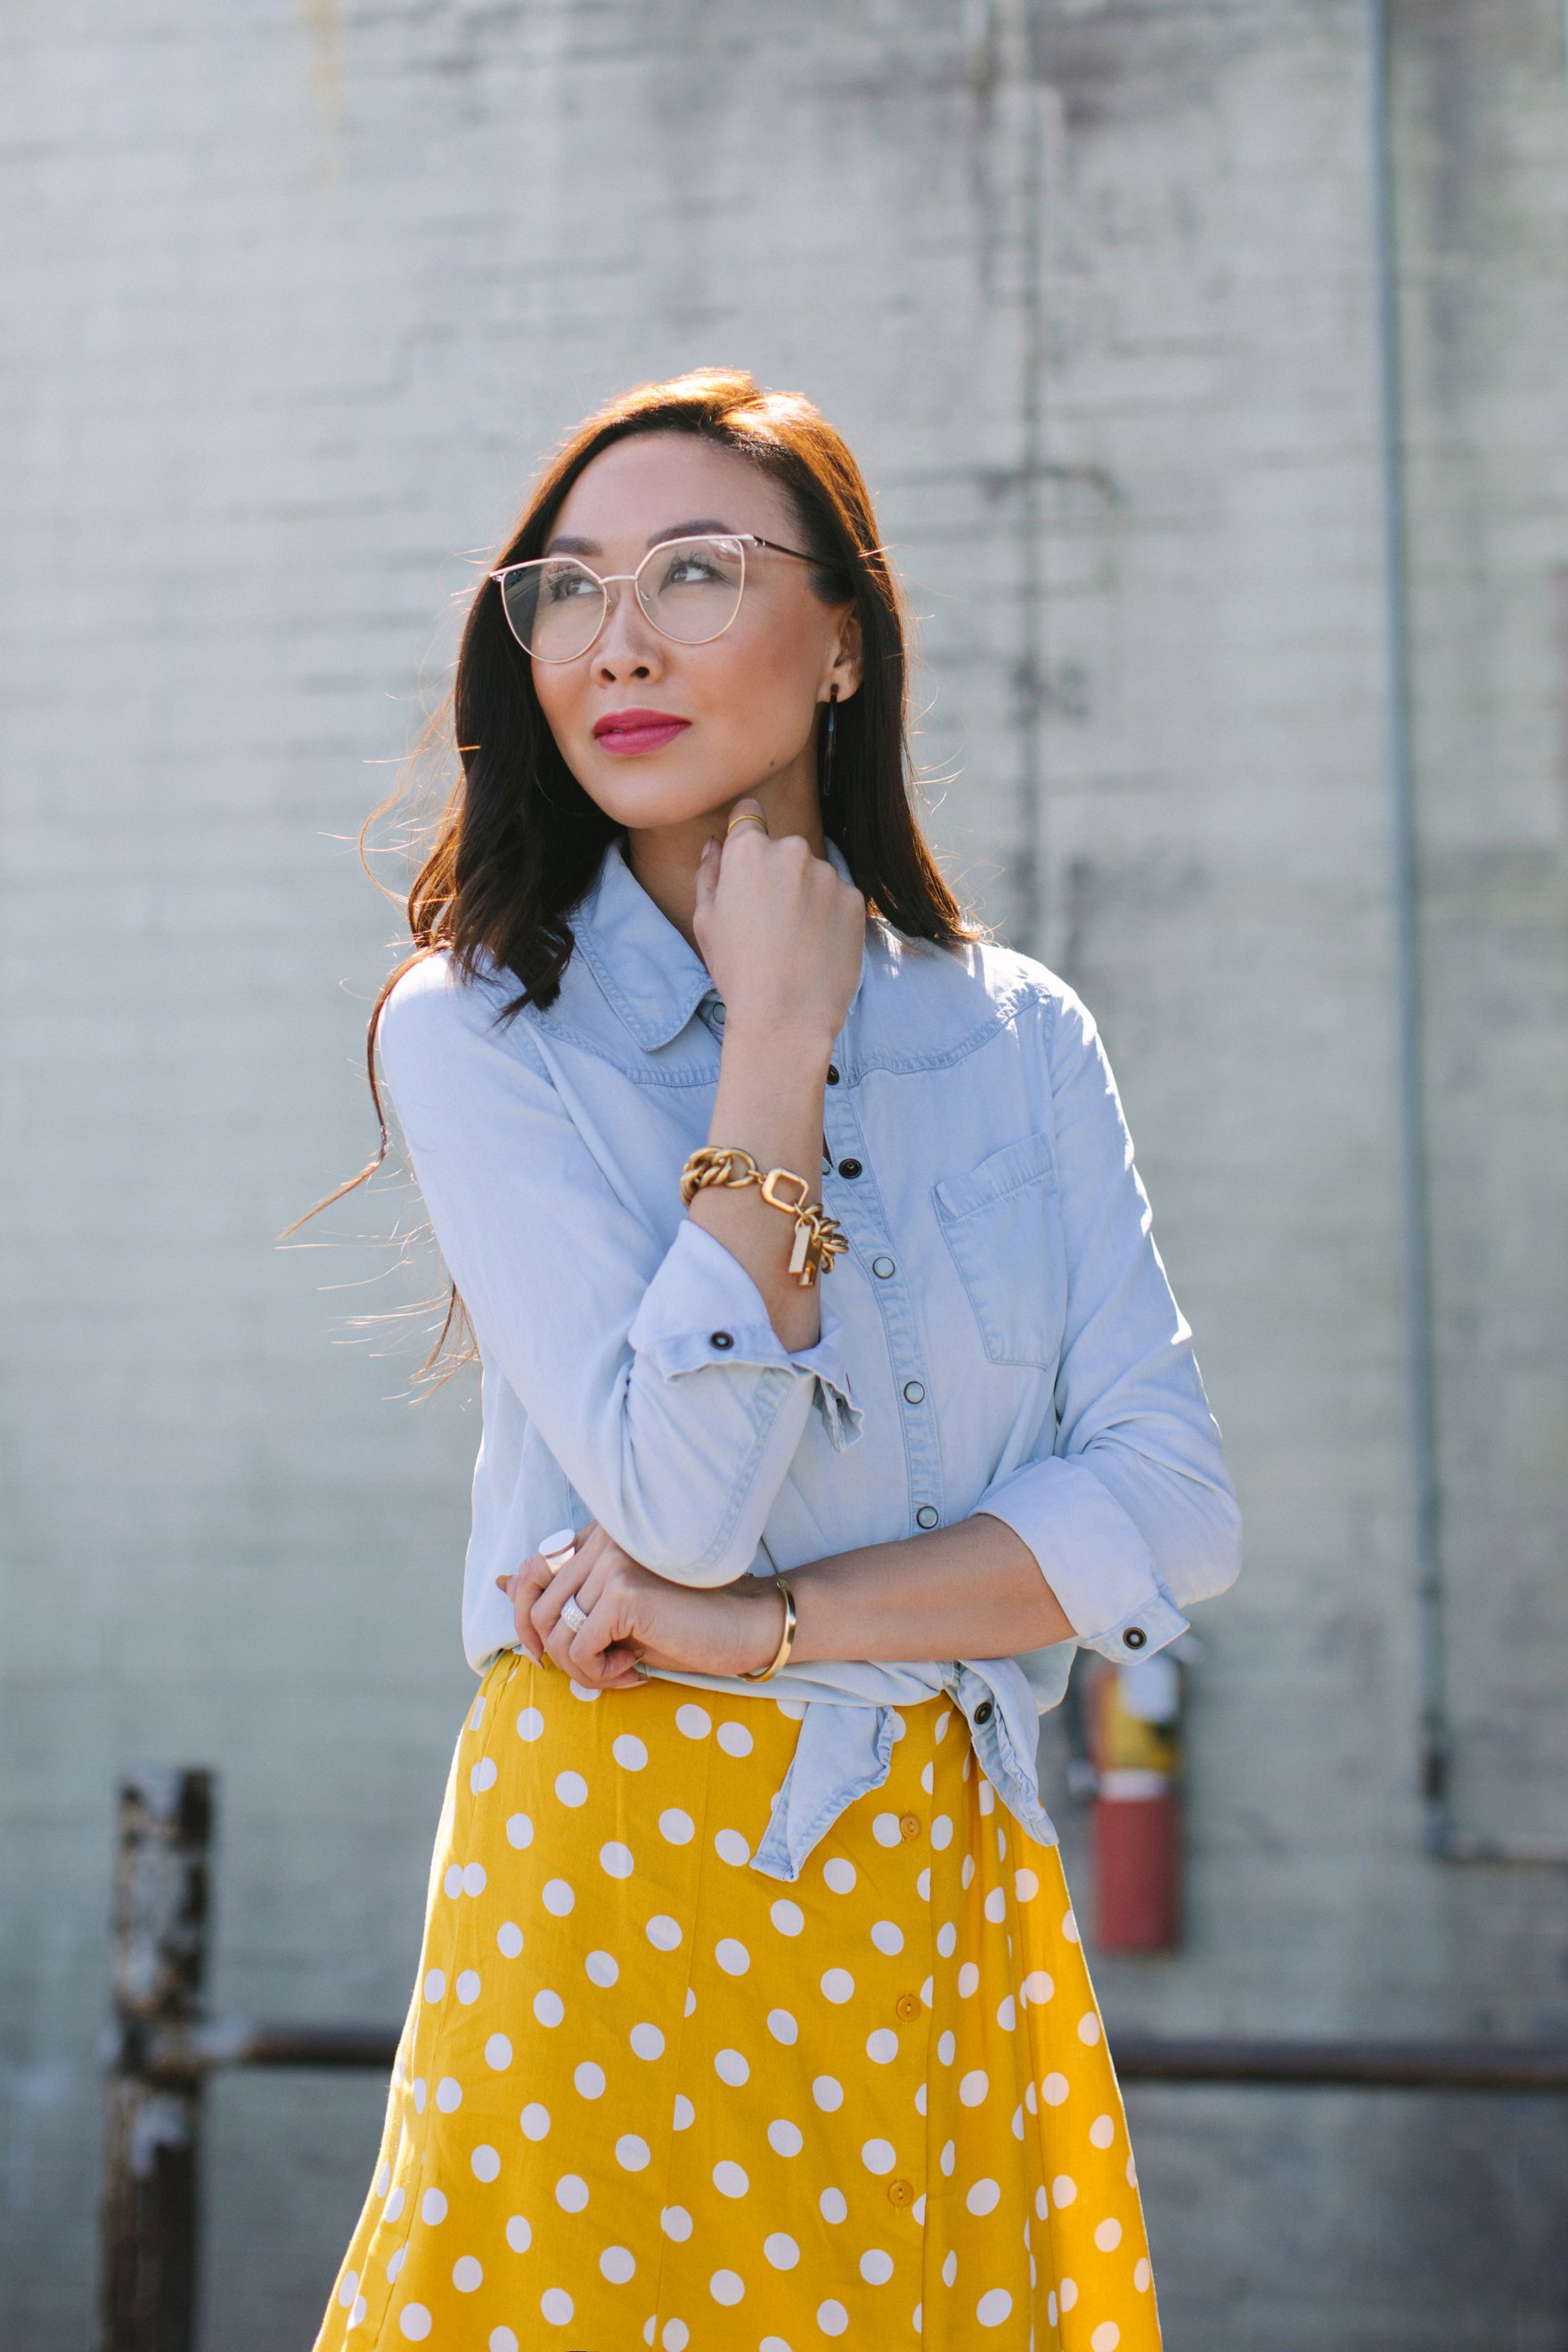 Yellow and white polka dot dress forever 21 paired with a chambray top featuring India hicks bracelet and other jewels lifestyle blogger Diana Elizabeth also wearing clear sunglases